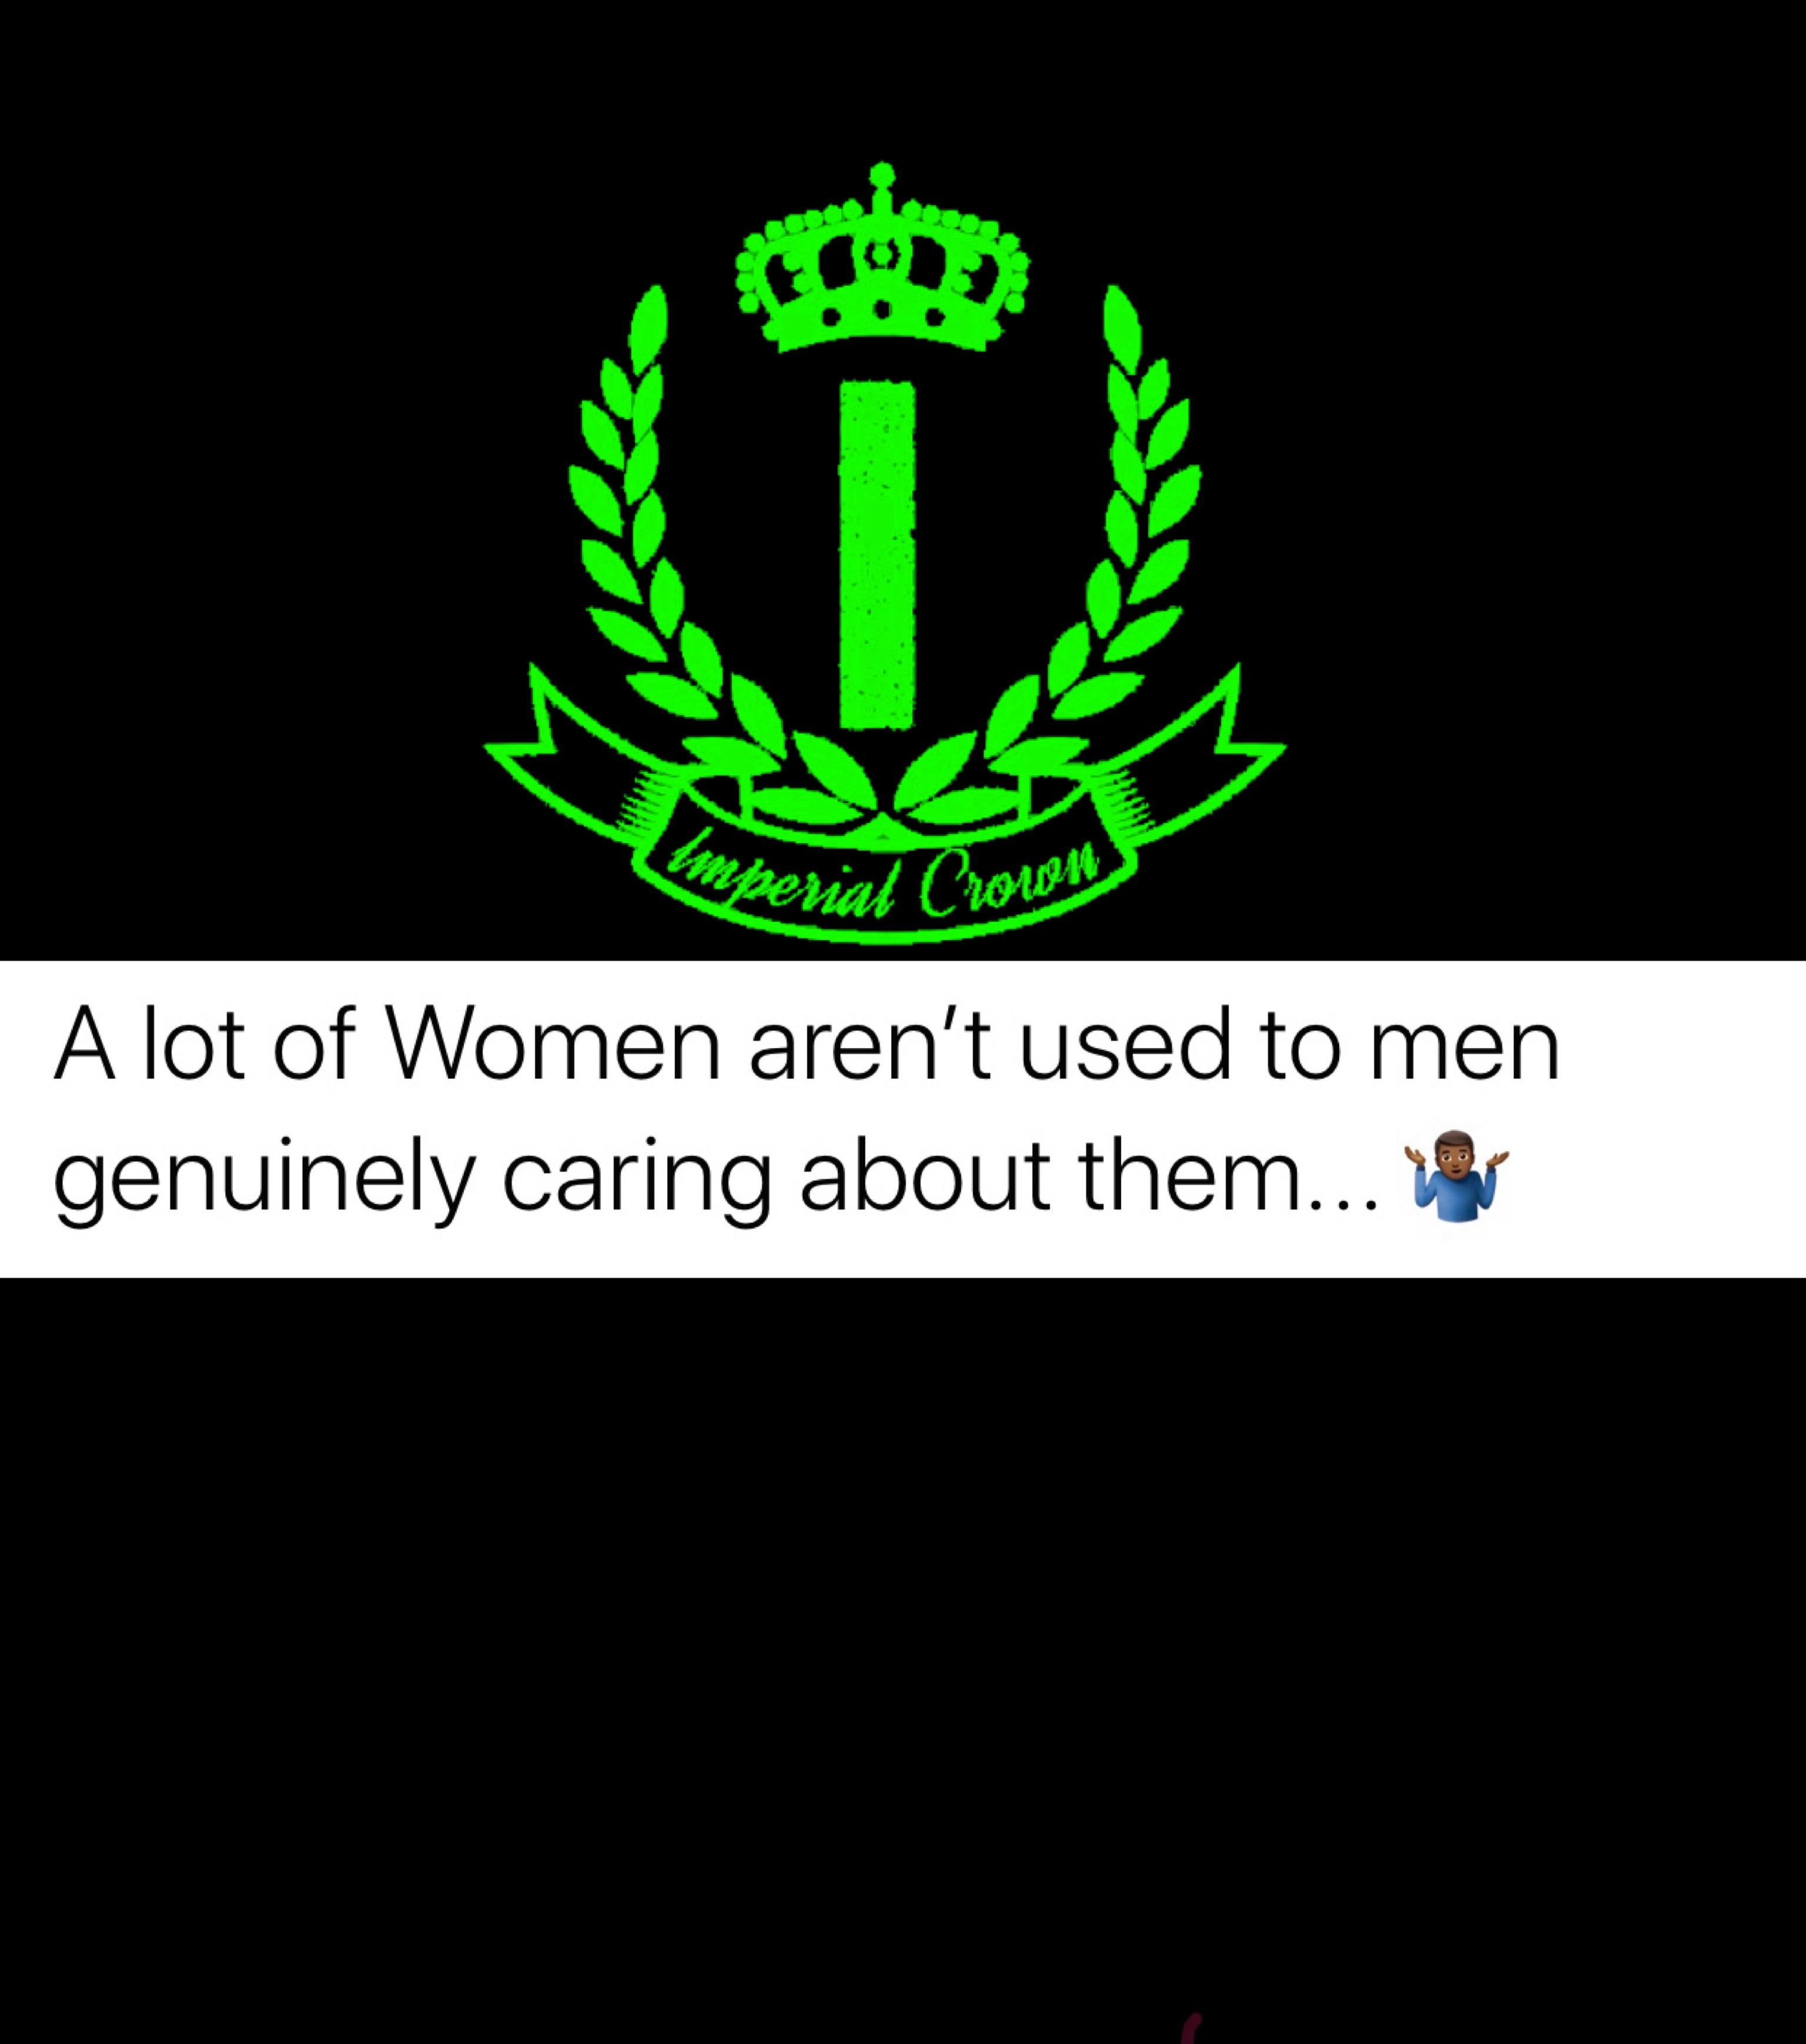 A lot of women aren't used to men genuinely caring about them